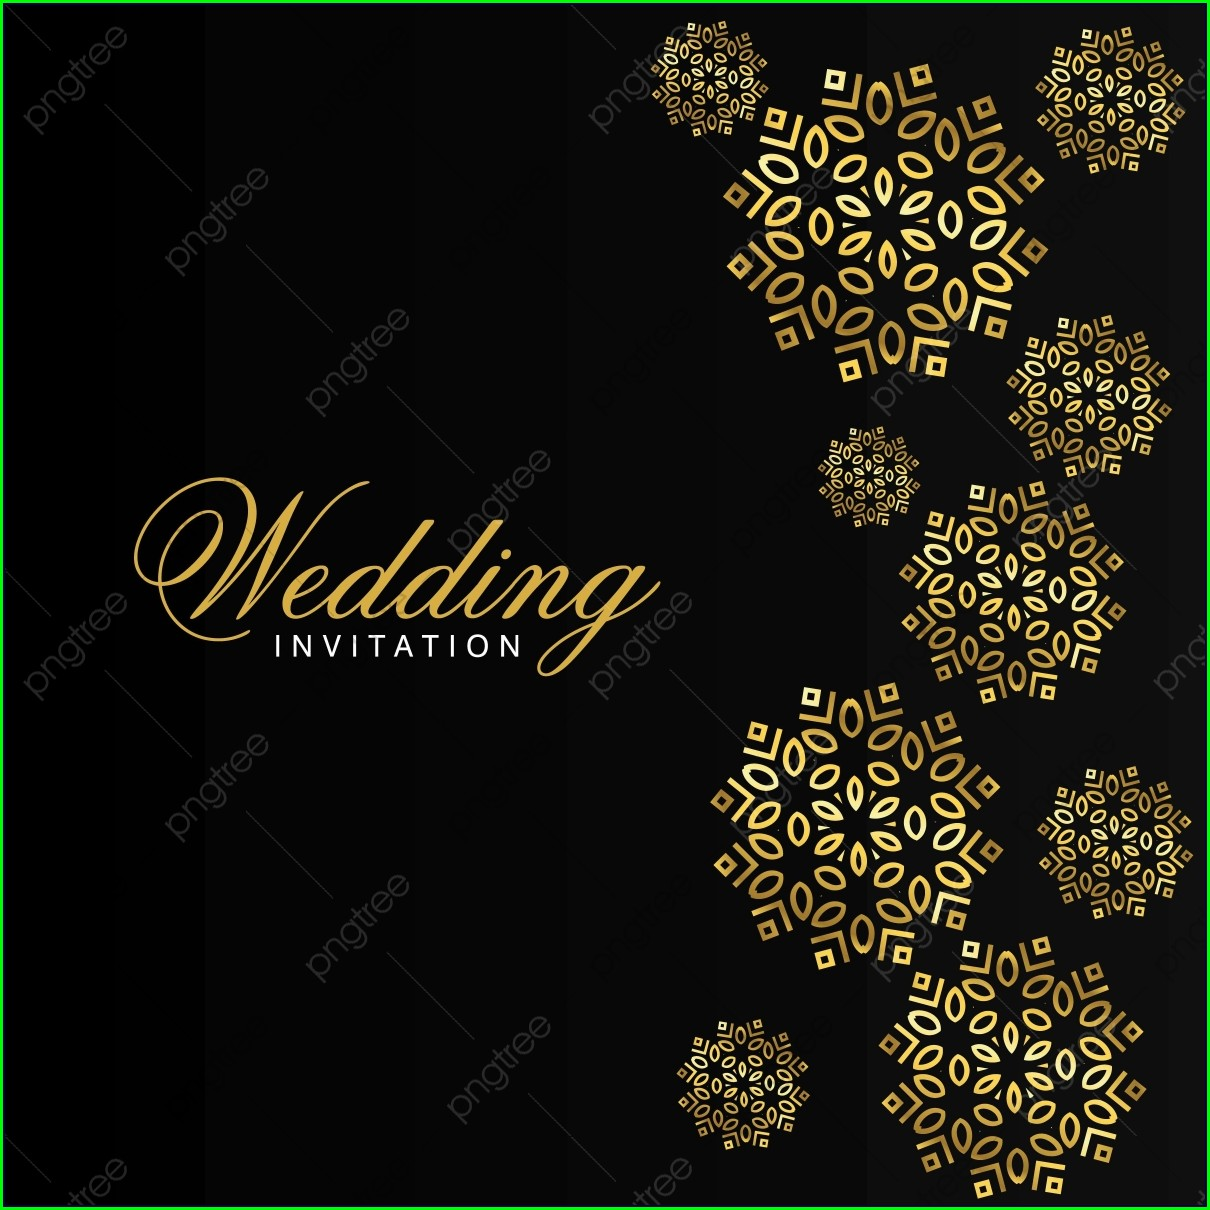 Design Wedding Invitation Background Png